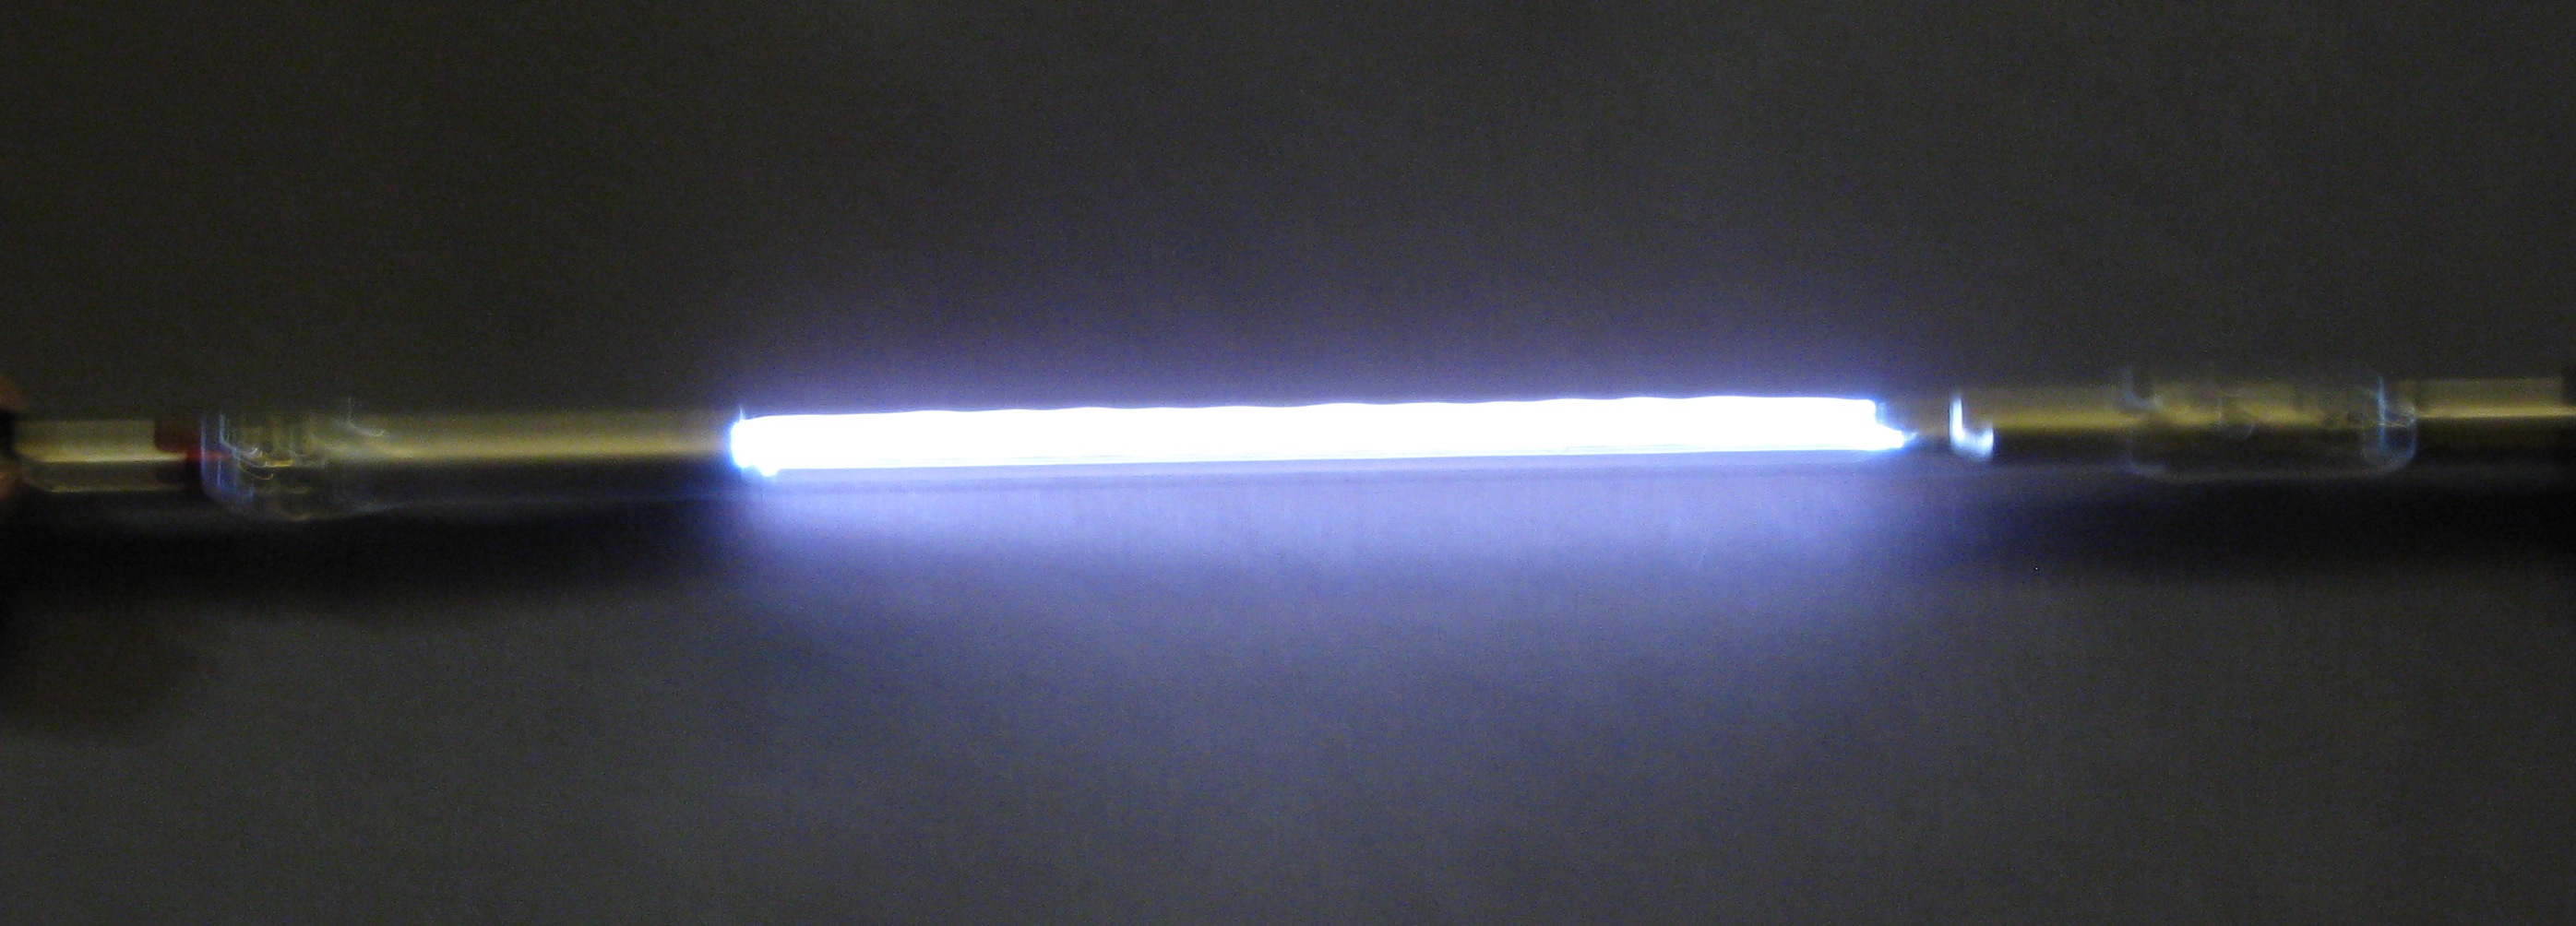 FileIon Spectral Line Radiation From A Krypton Arc Lamp